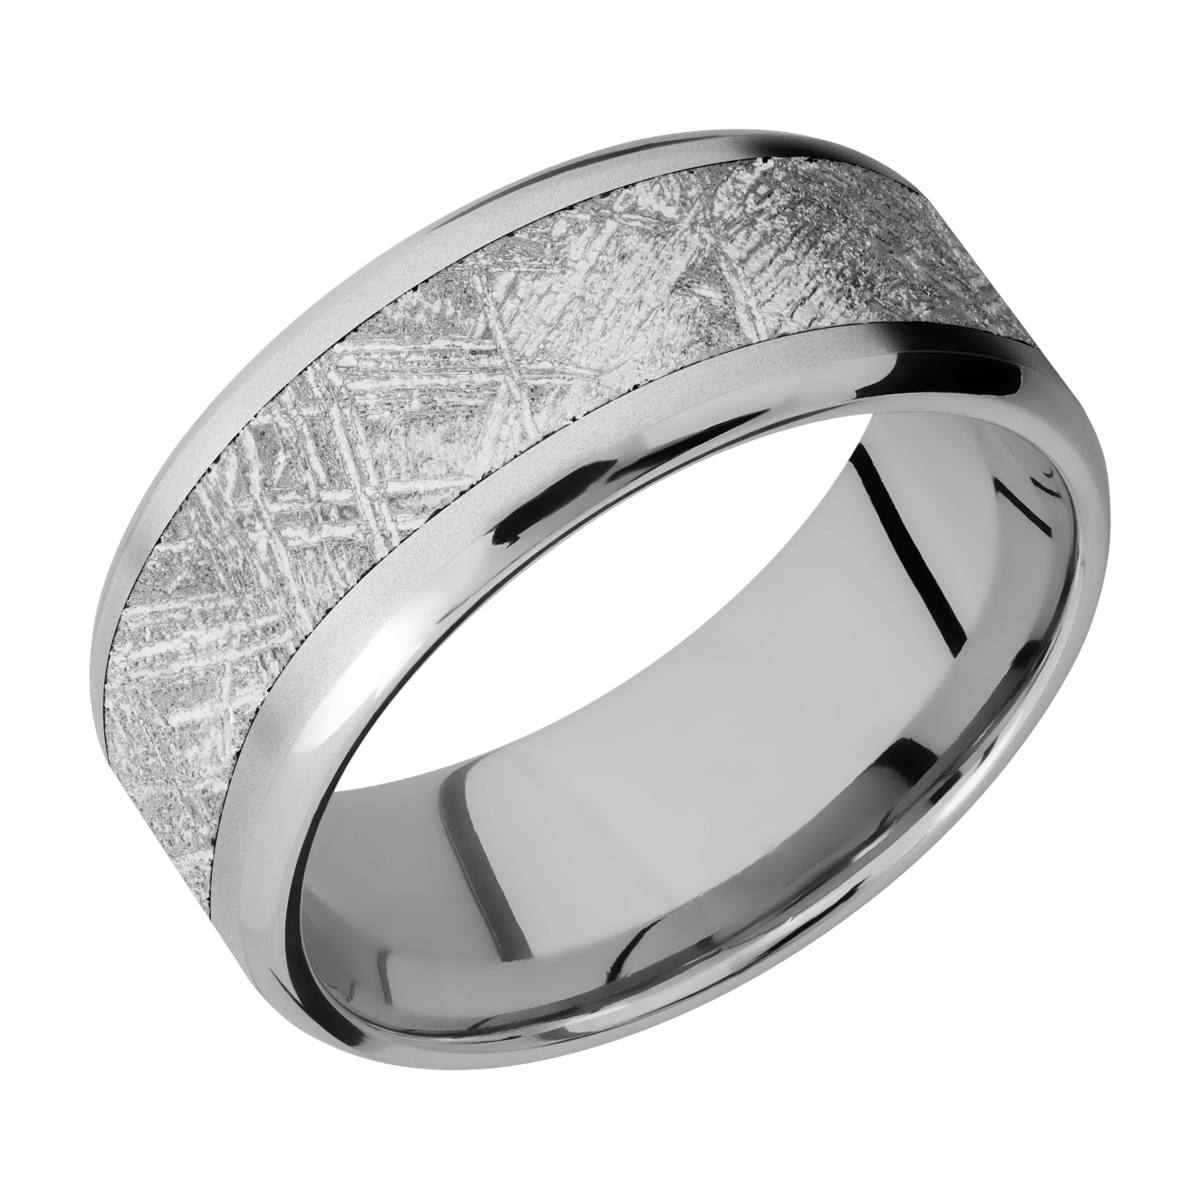 Lashbrook 9B16(NS)/METEORITE Titanium Wedding Ring or Band